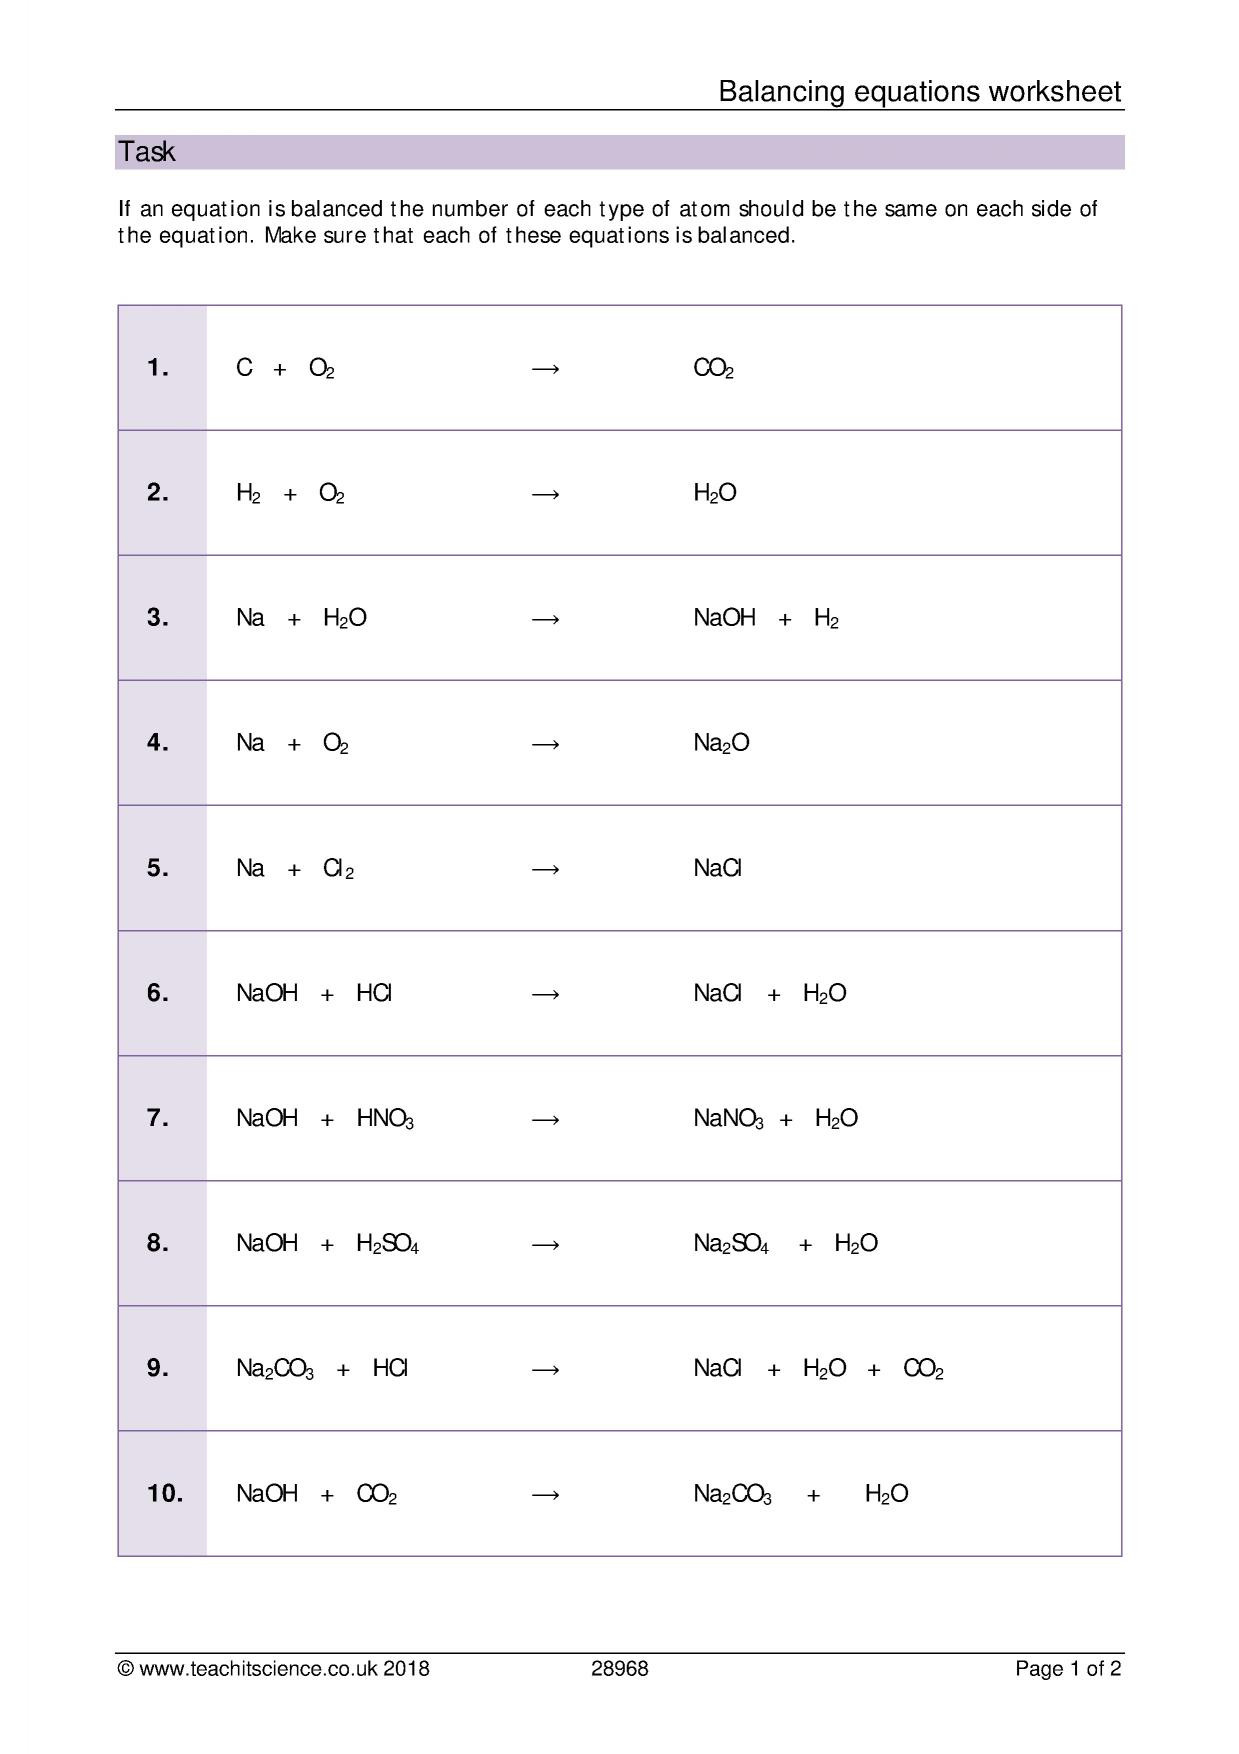 30 Balancing Equation Worksheet With Answers